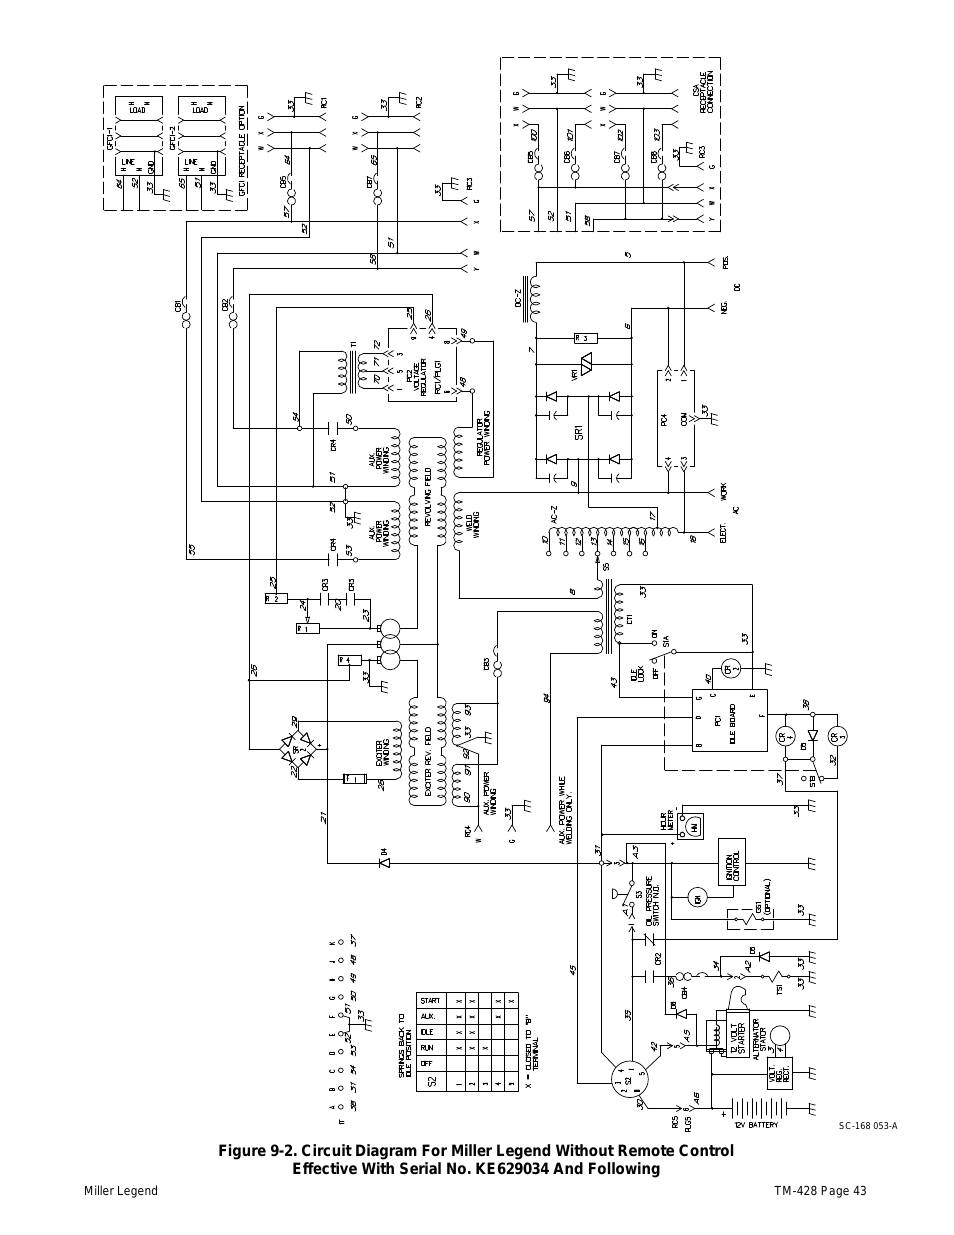 Hvac Drawing Symbols Legend At Free For Personal Vacuum Switch Symbol Diagram Download Wiring Schematic 954x1235 Miller Xwiaw